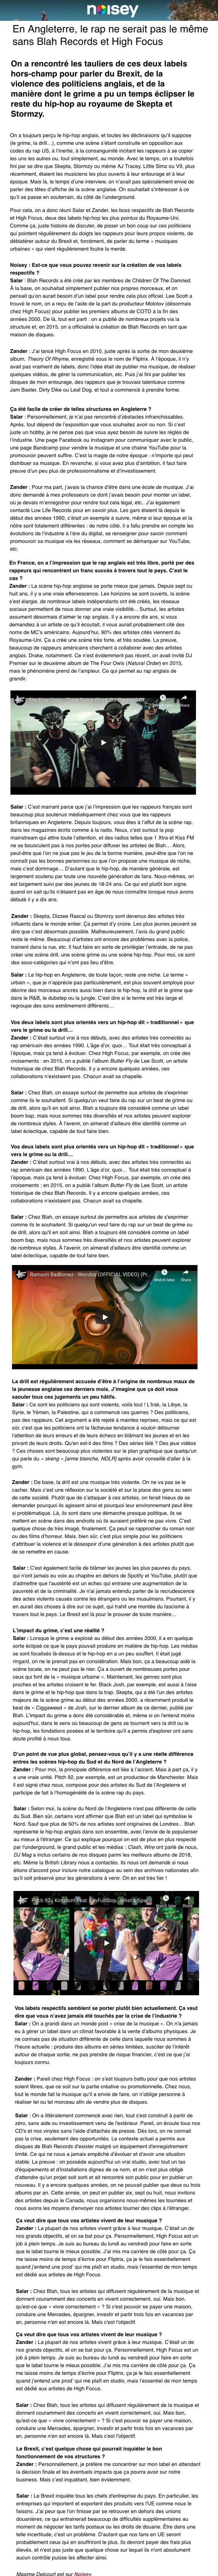 Investir Dans Un Spa press – page 11 – official website of high focus records